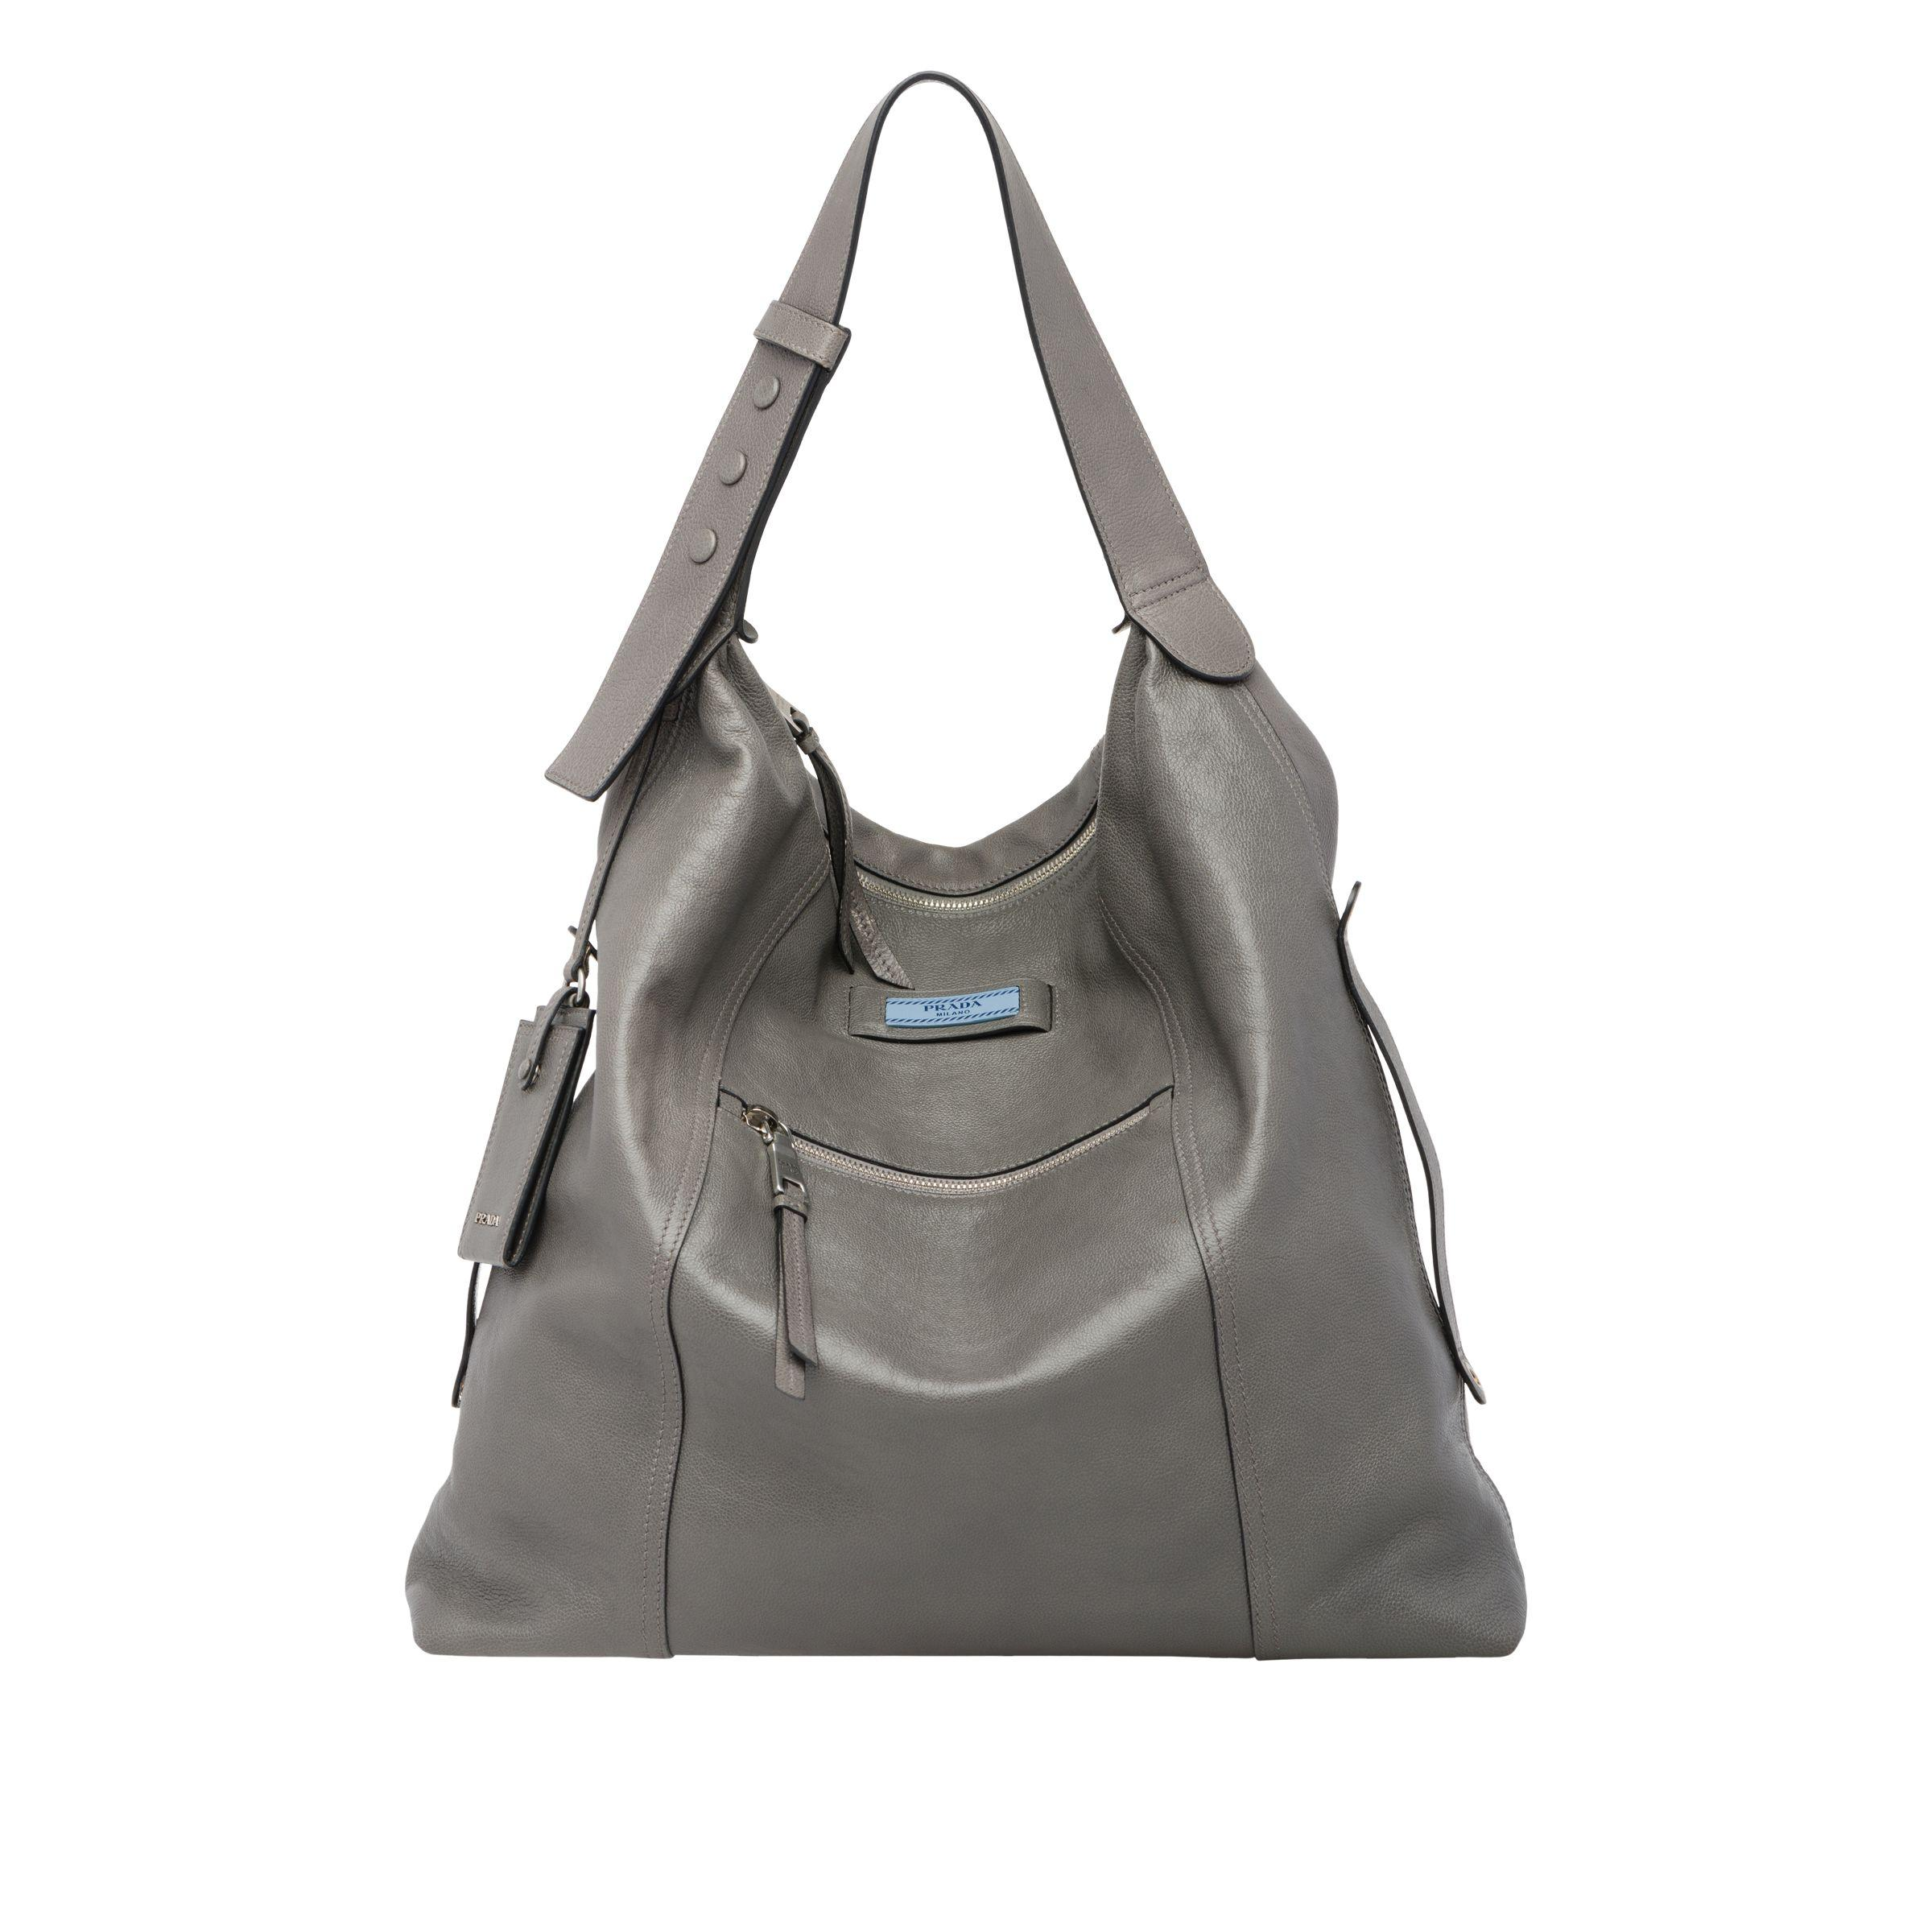 87e668acd9bd Prada. Women's Etiquette Leather Bag. $2,390 From Orchard Mile